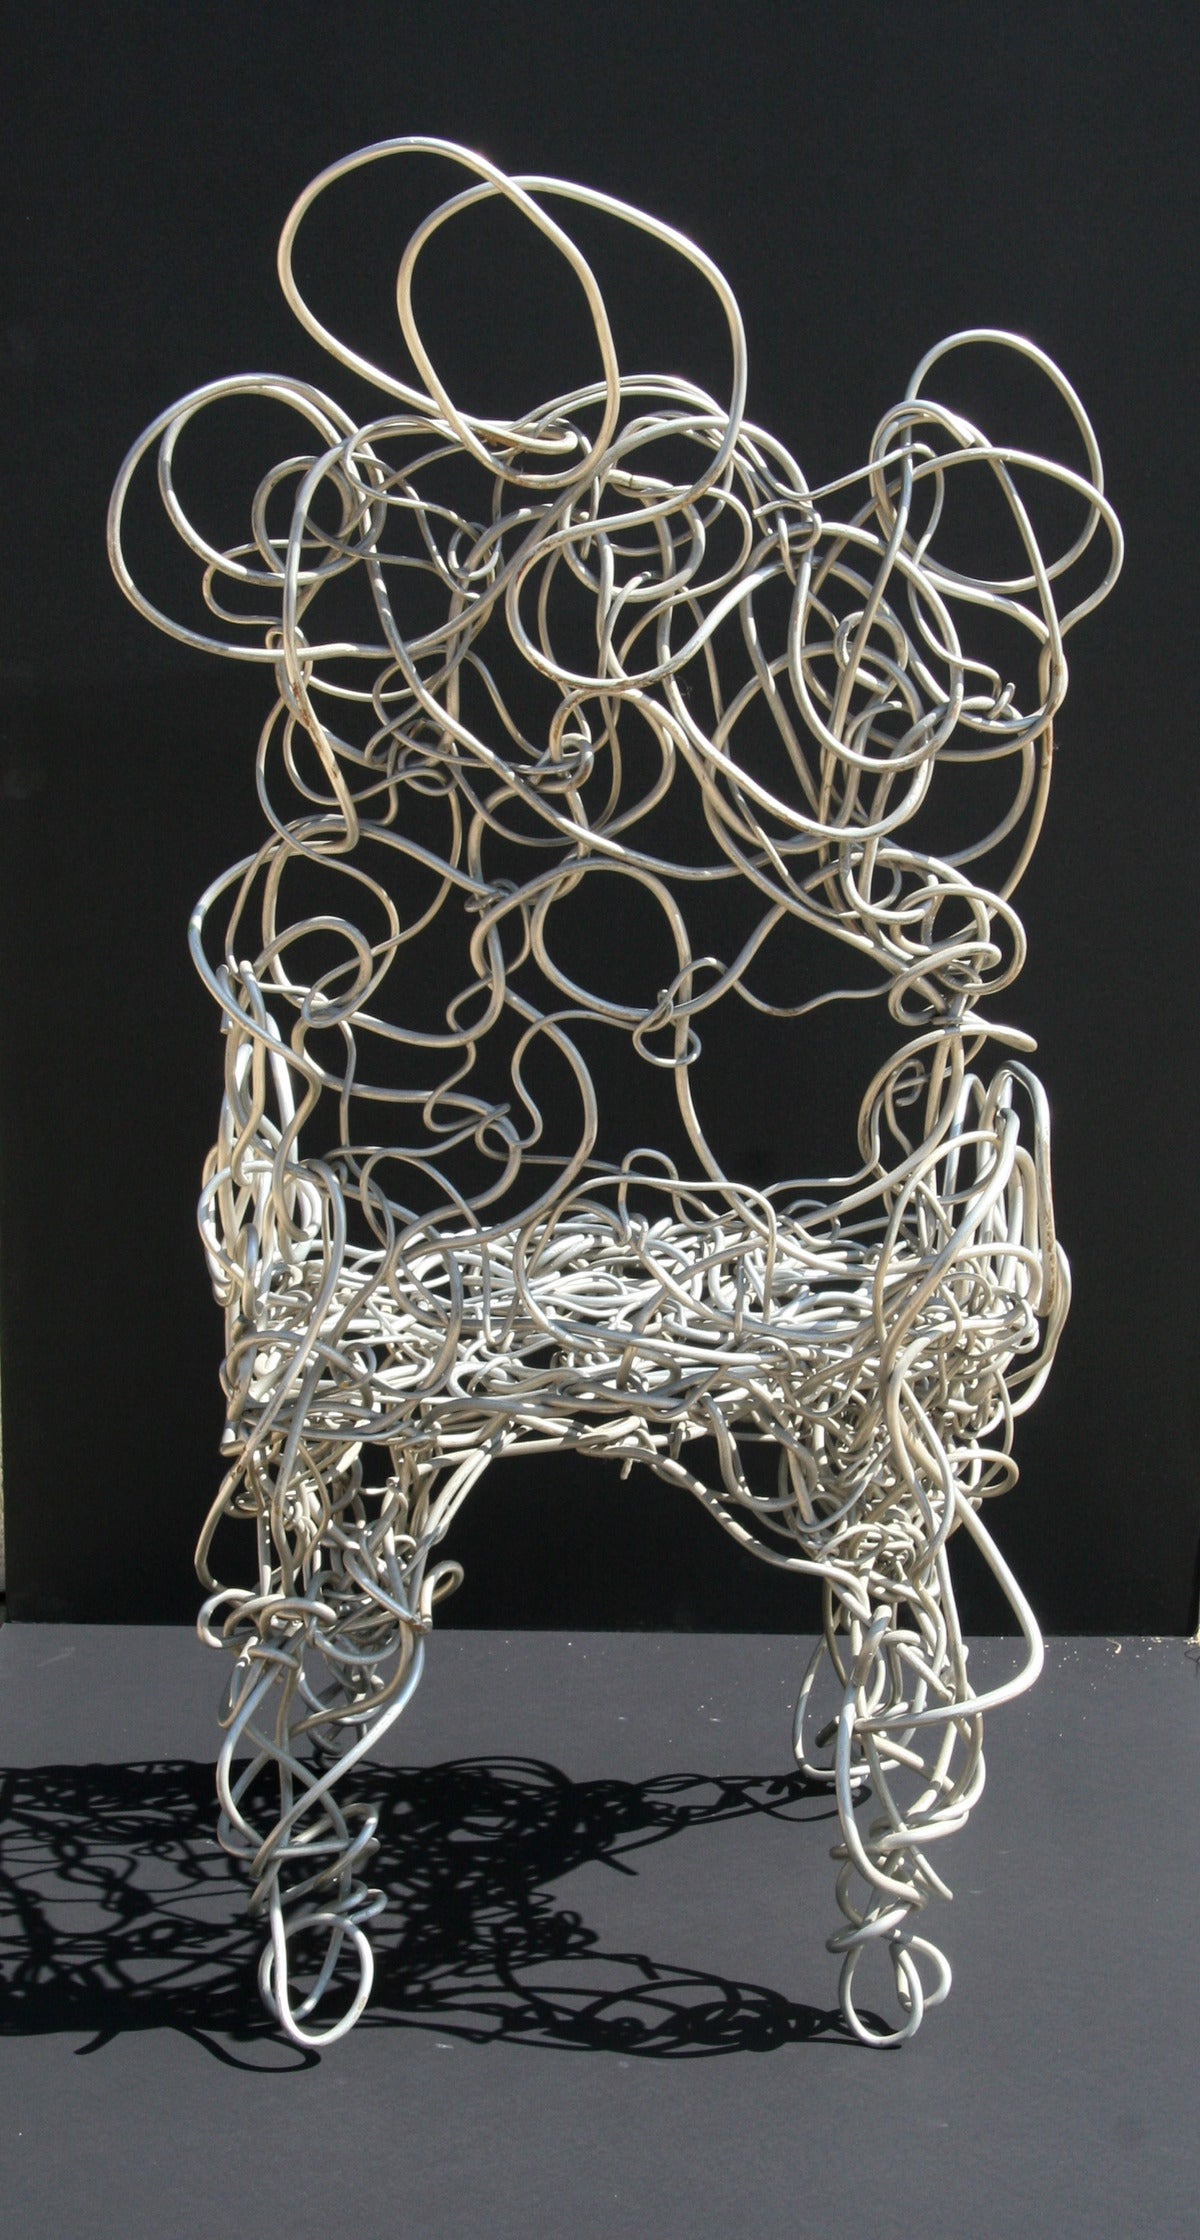 Unique Aluminum Sculptural Chair - Gray Abstract Sculpture by Forrest Warden Myers